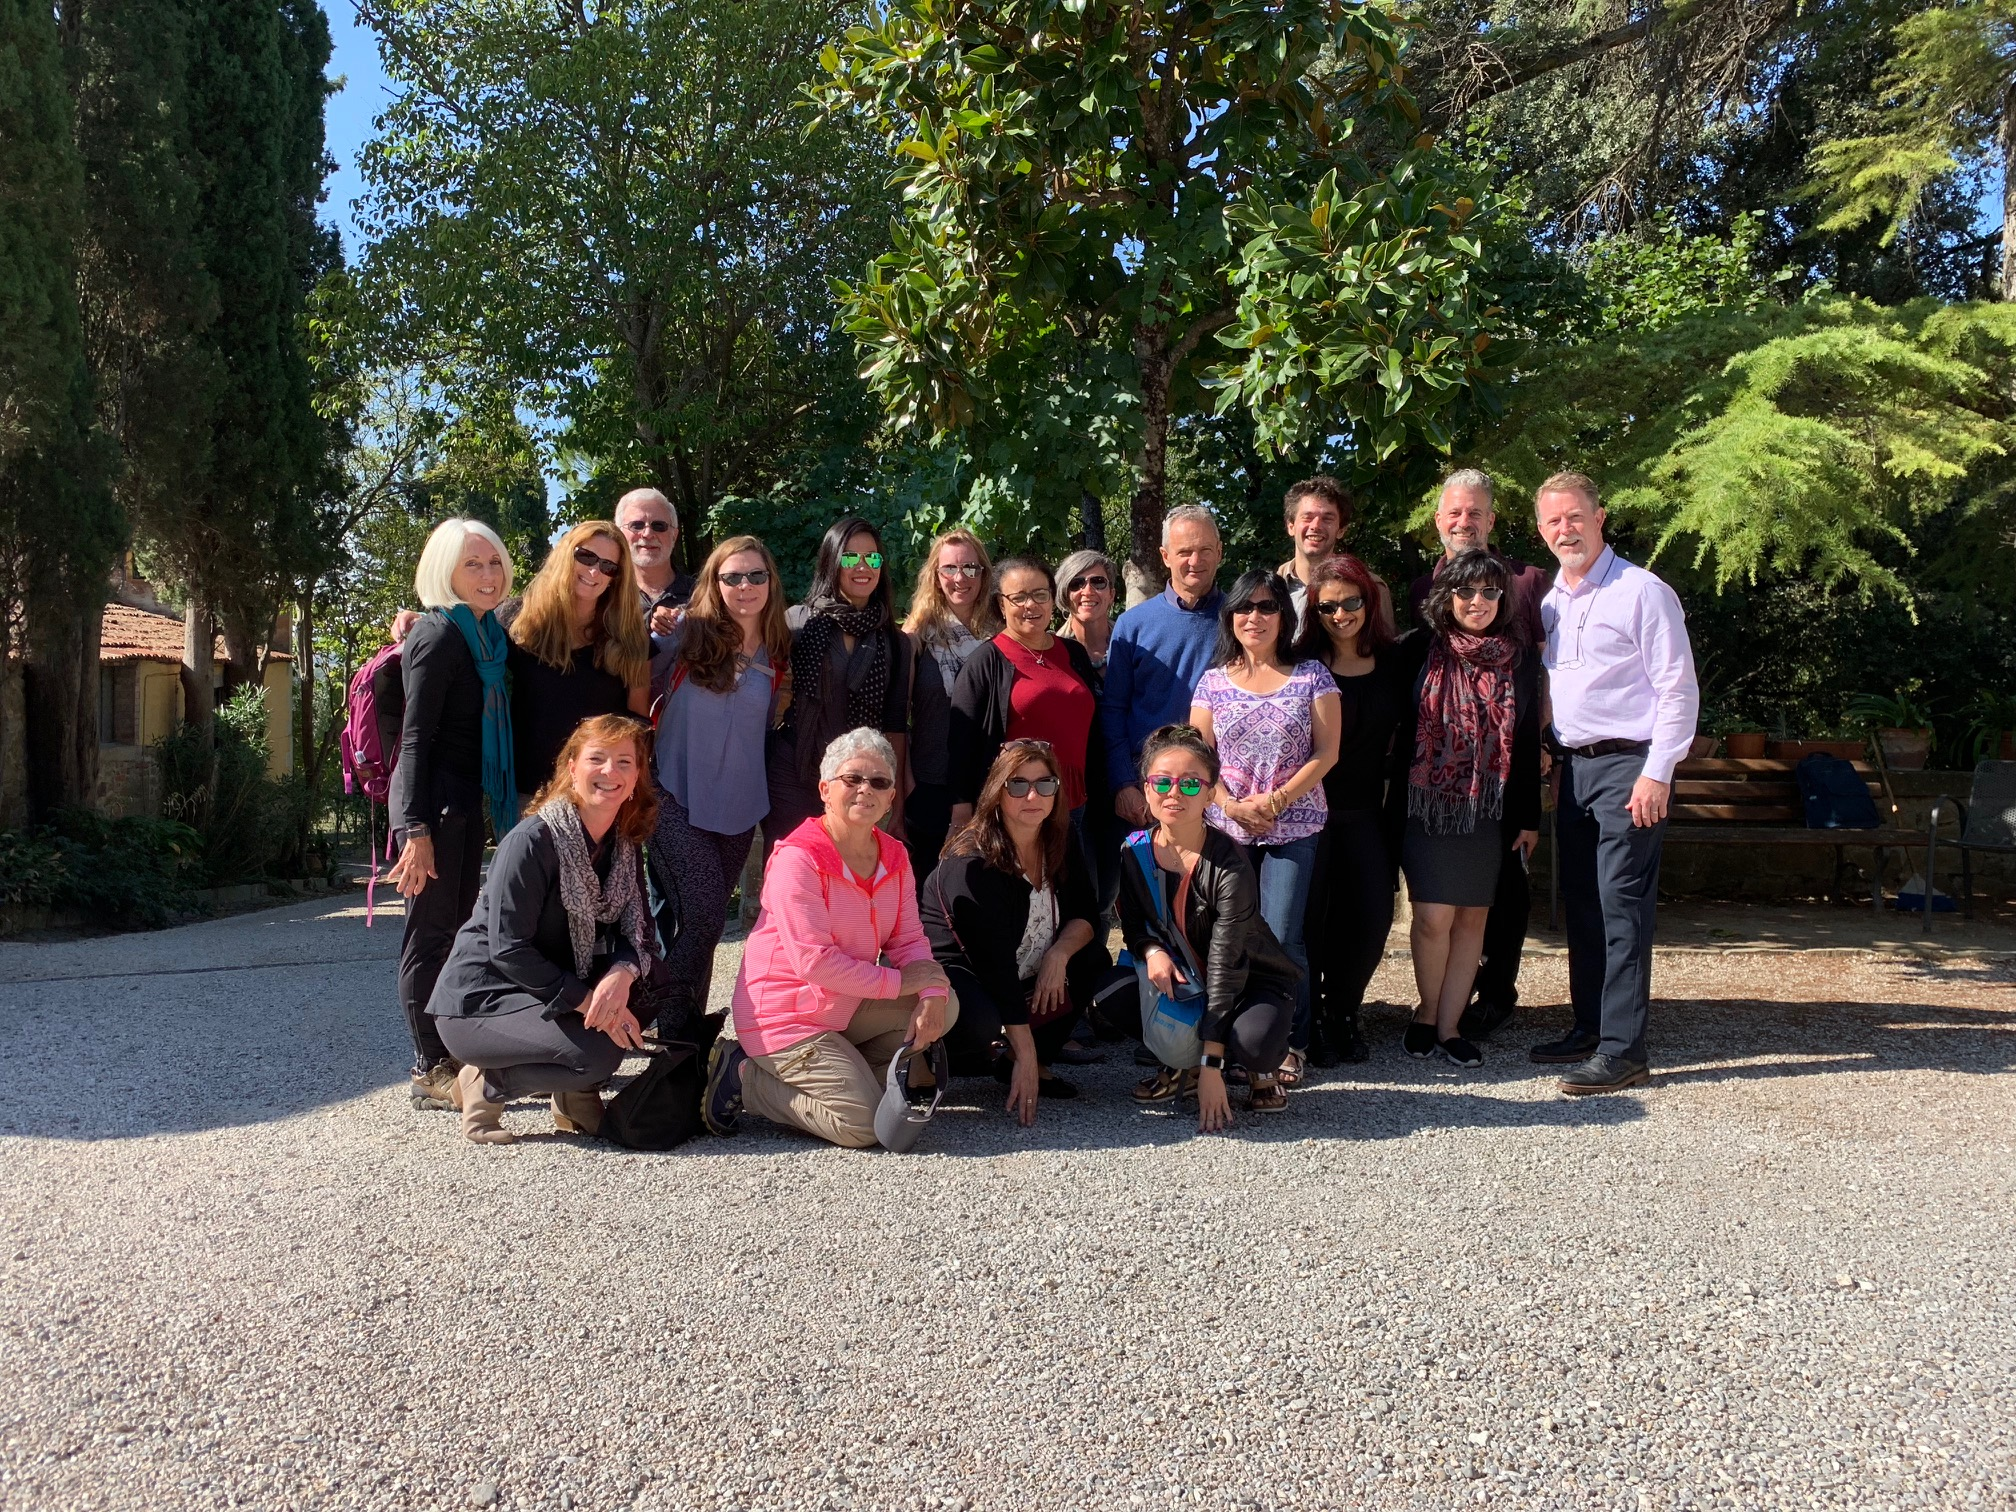 group photo vinyard 2018 italy retreat.jpg